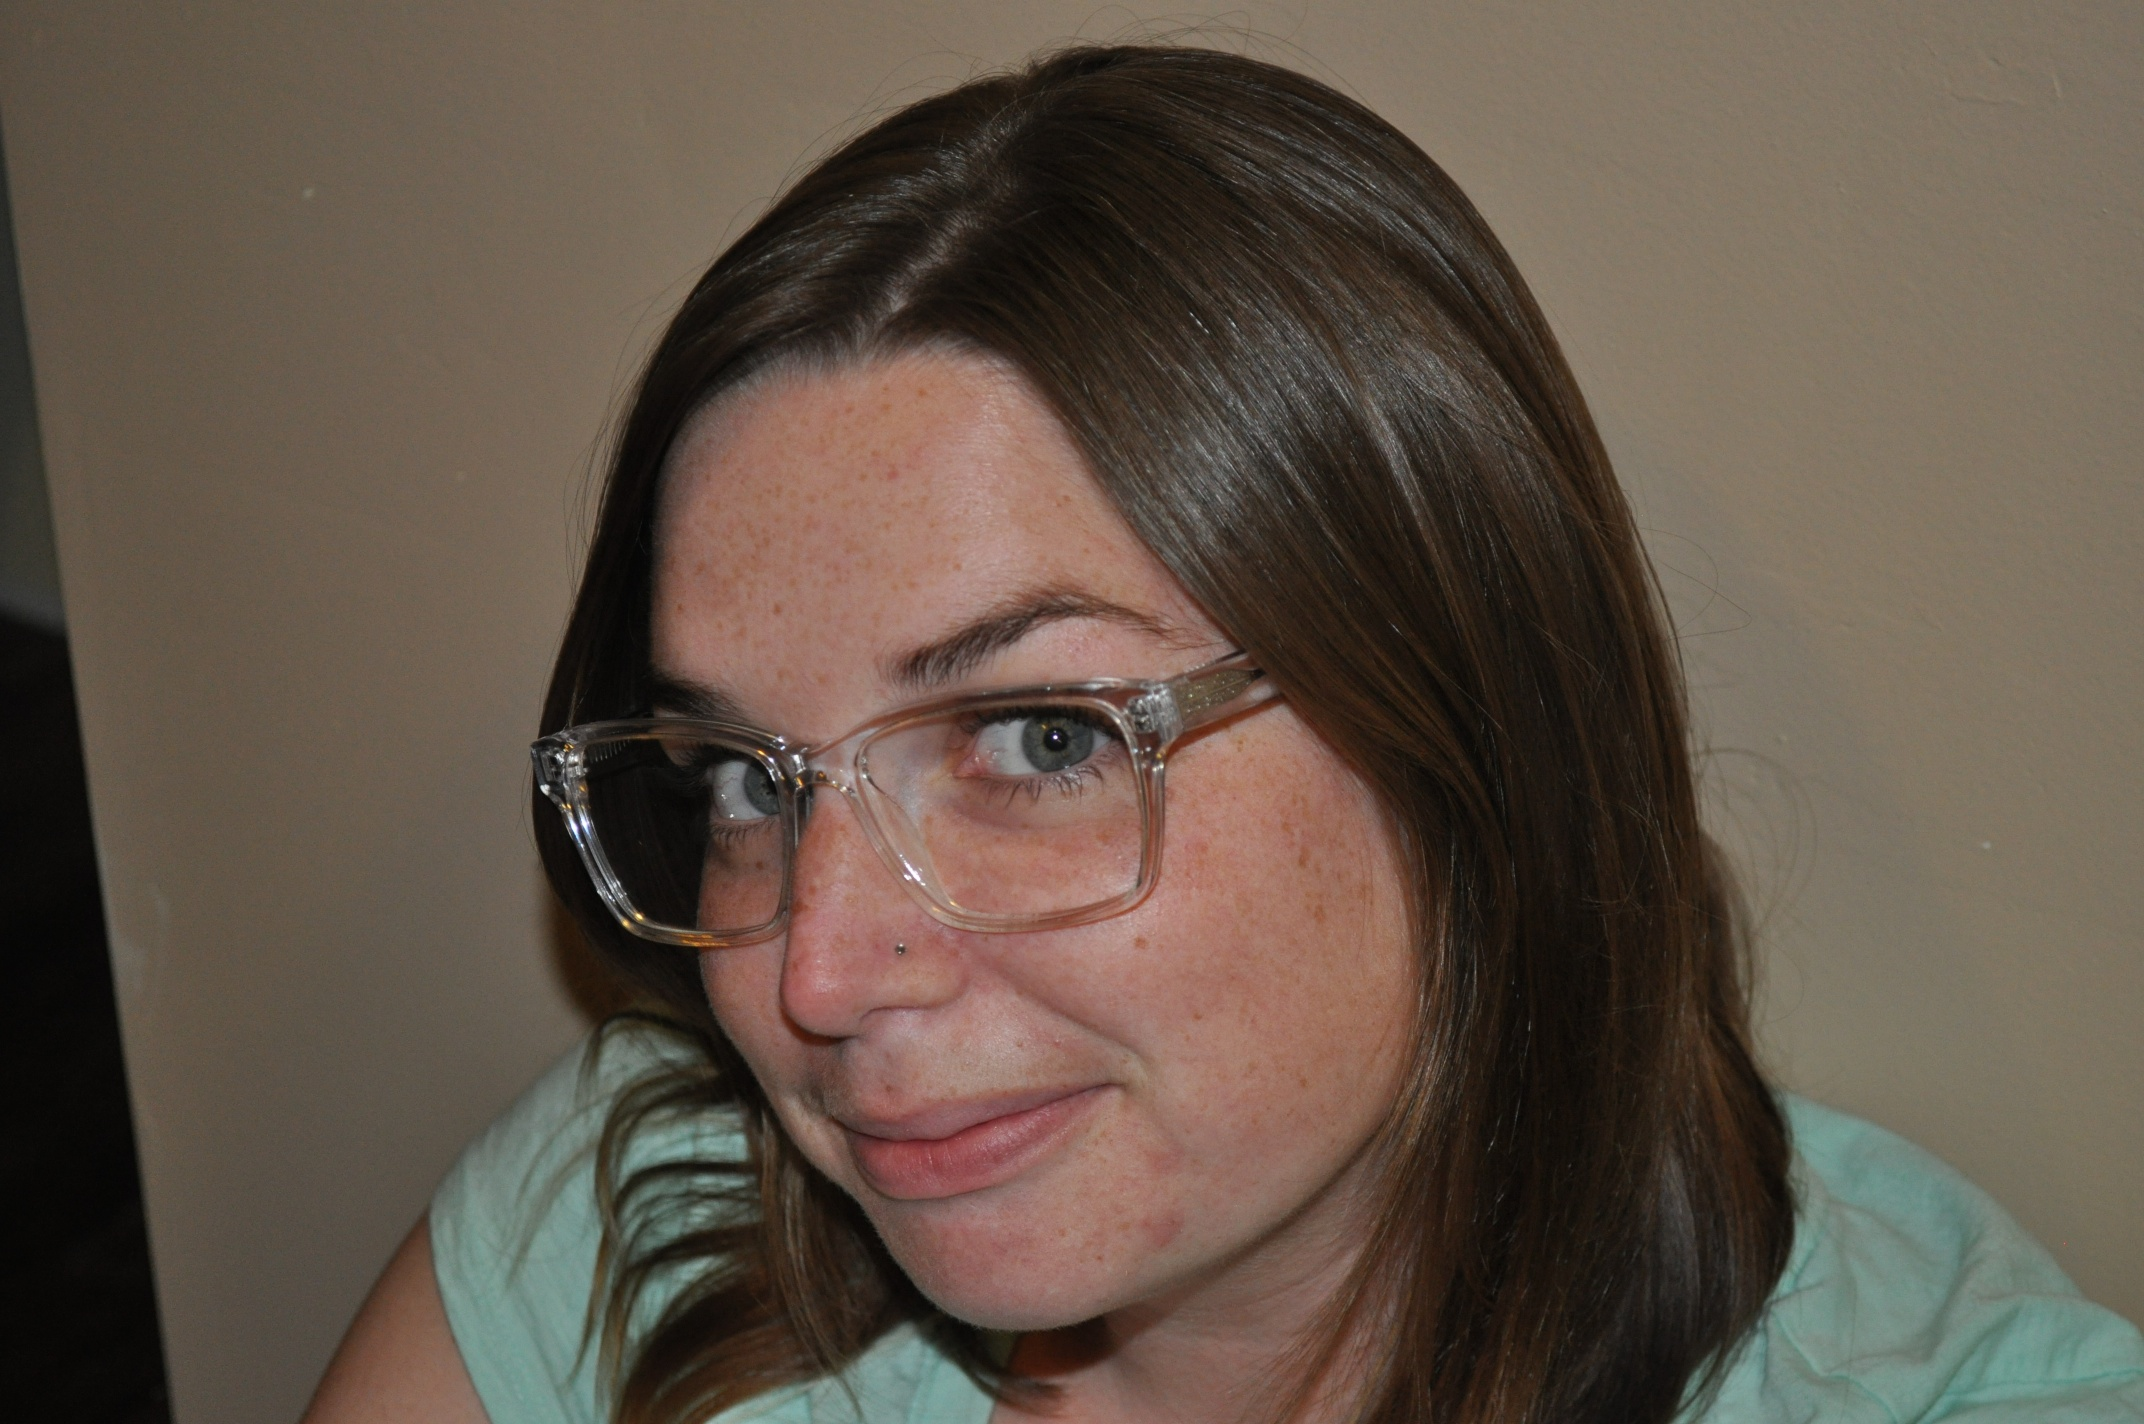 308422a7bb Help me pick new glasses! – Amy Pajewski